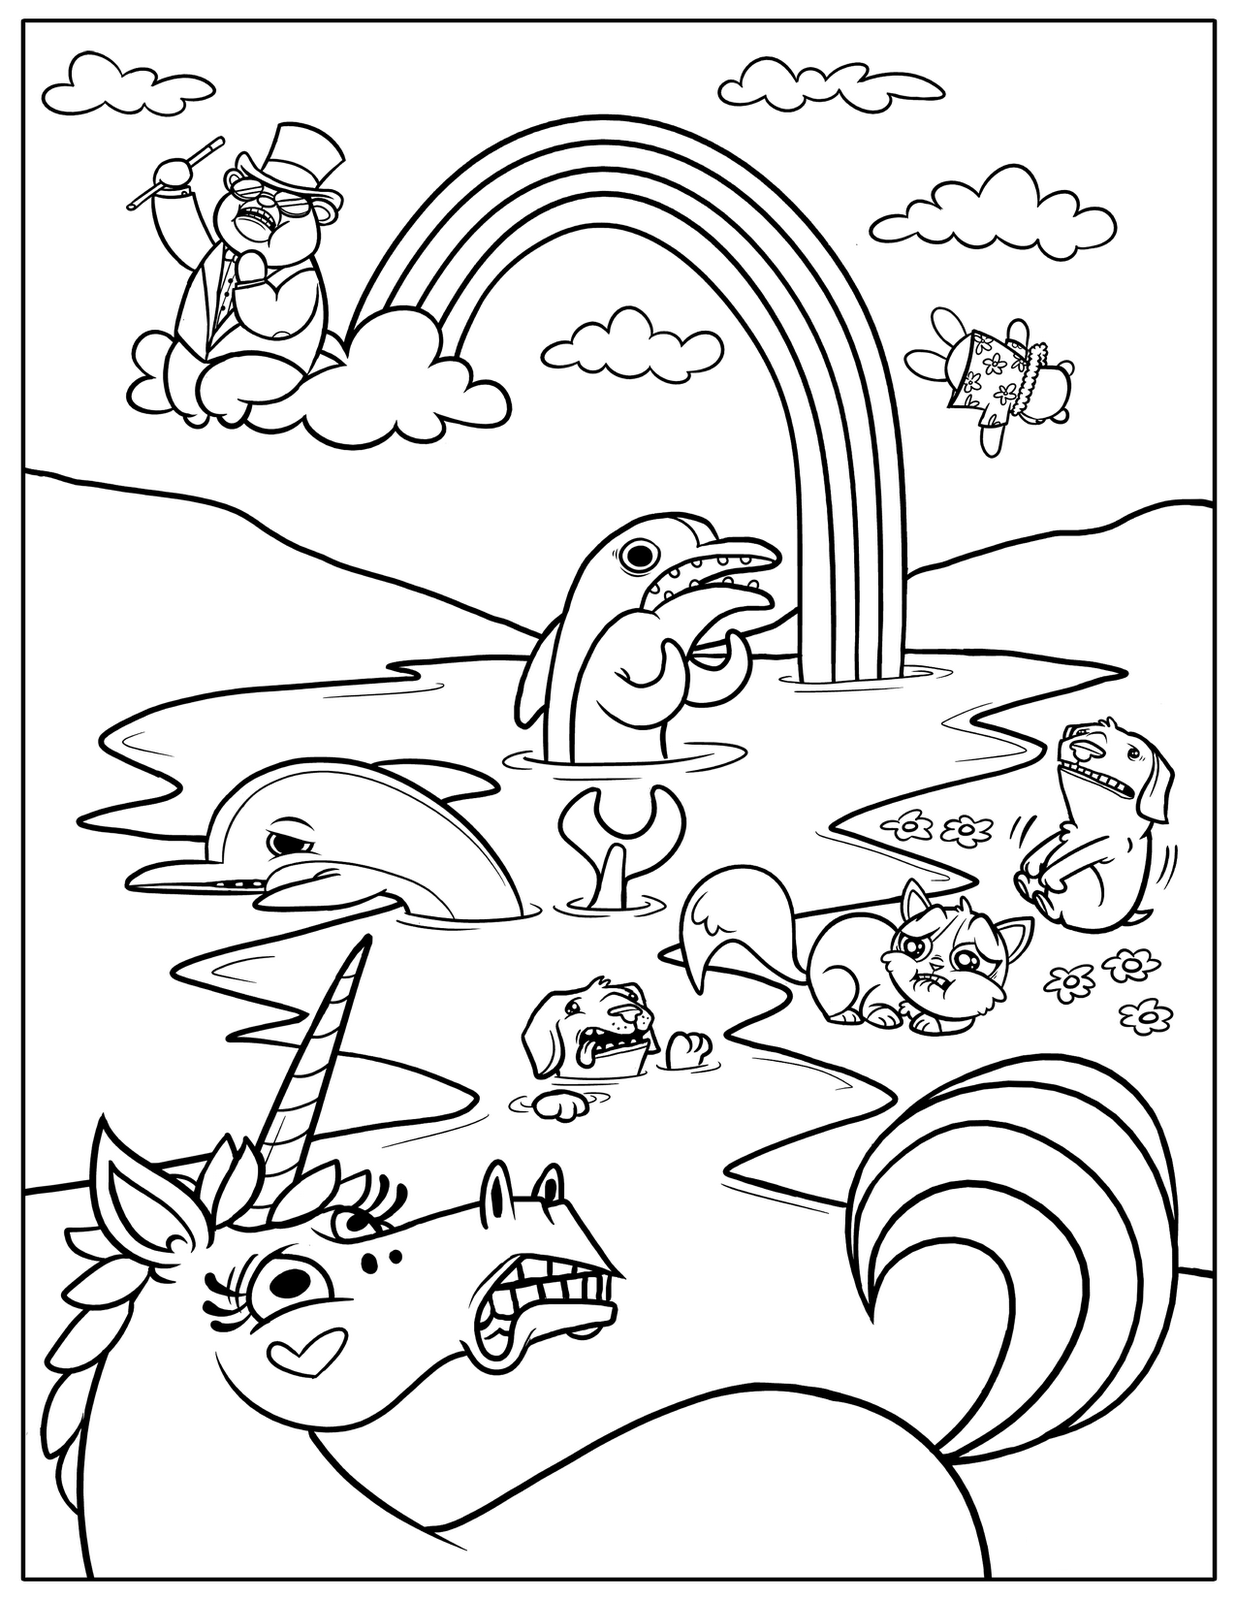 free printable rainbow coloring pages for kids - Kids Free Printable Coloring Pages